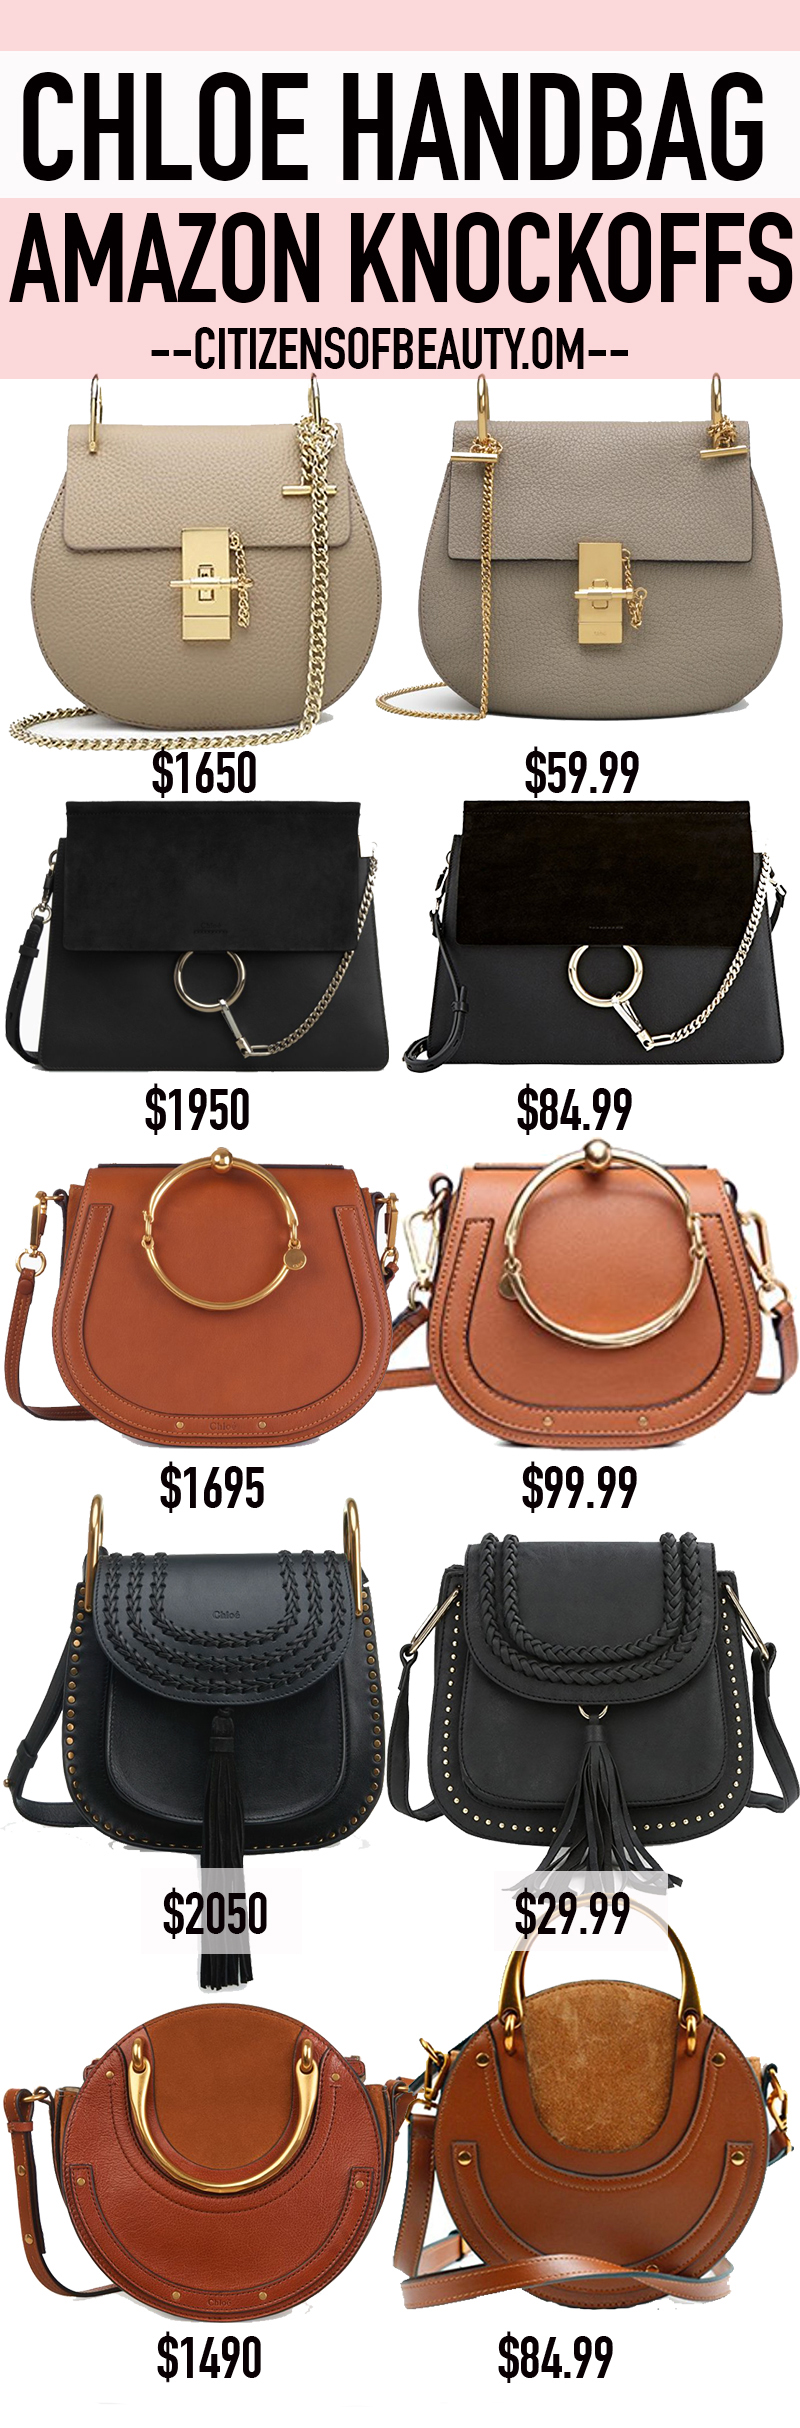 CHLOE Handbag Knockoffs that are all under $100